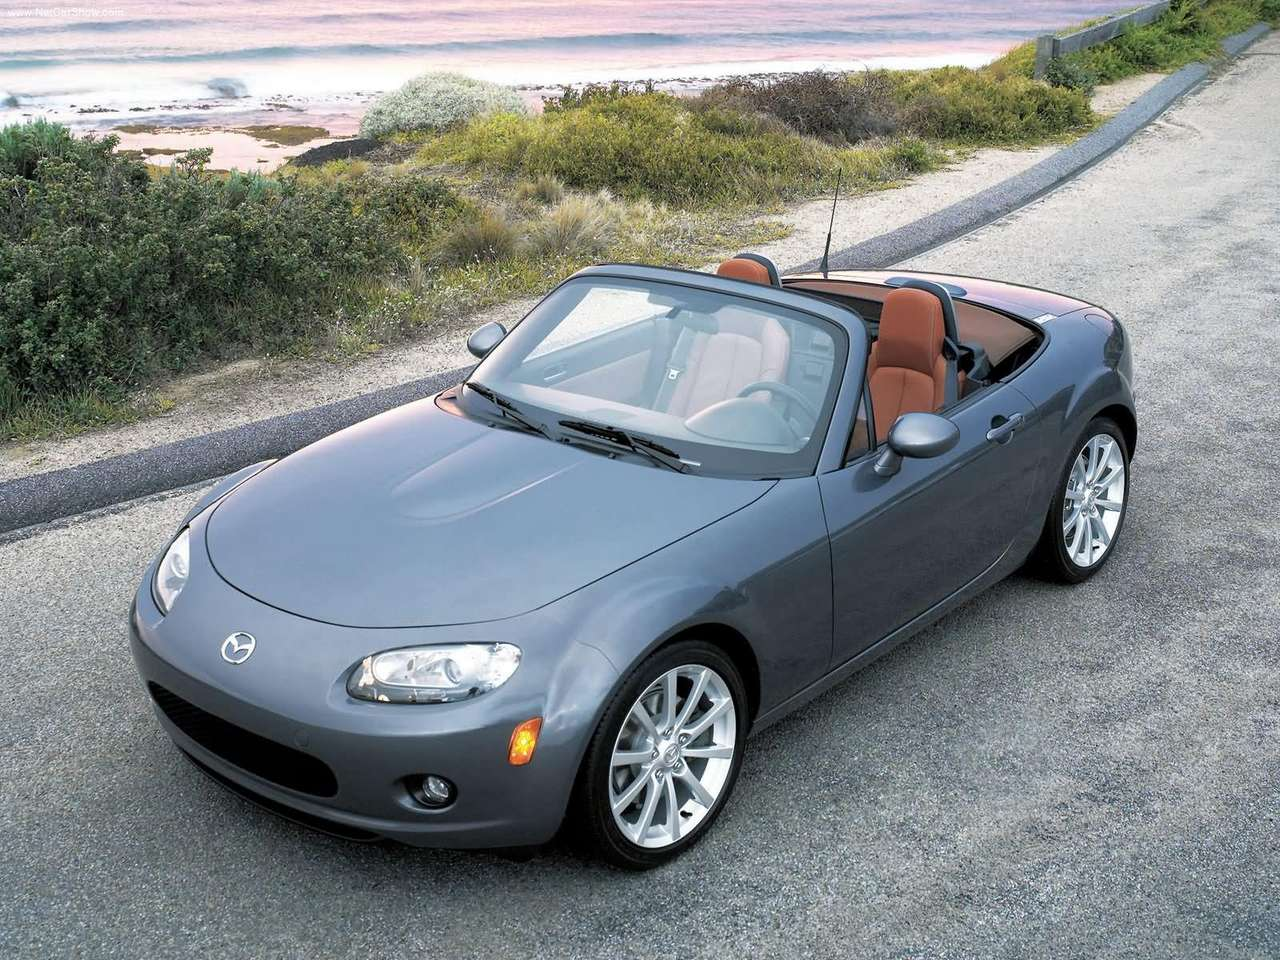 2006 mazda mx5. Black Bedroom Furniture Sets. Home Design Ideas